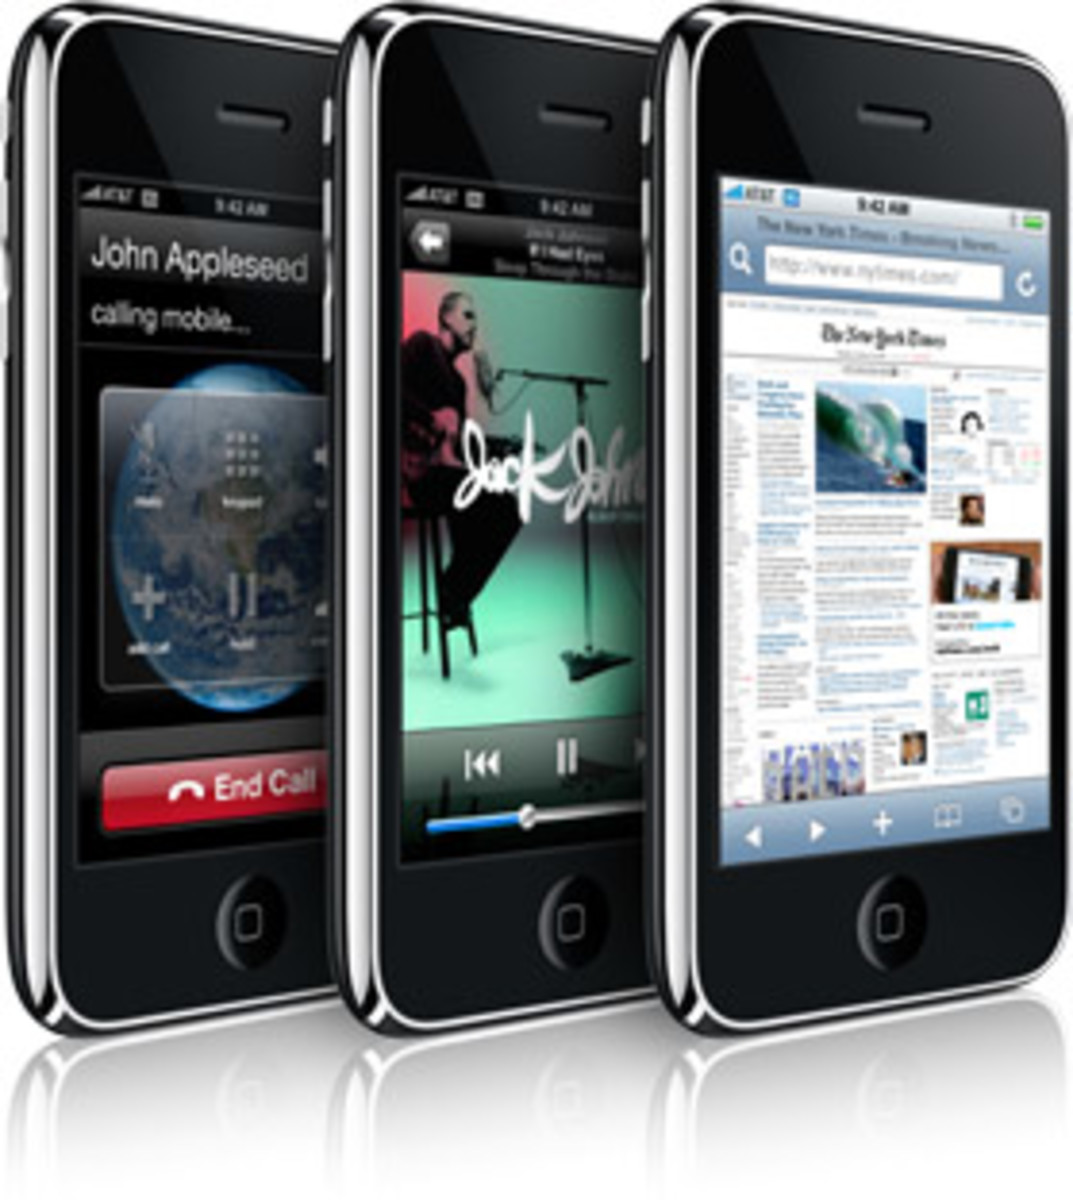 Apple - iPhone 3G - 1